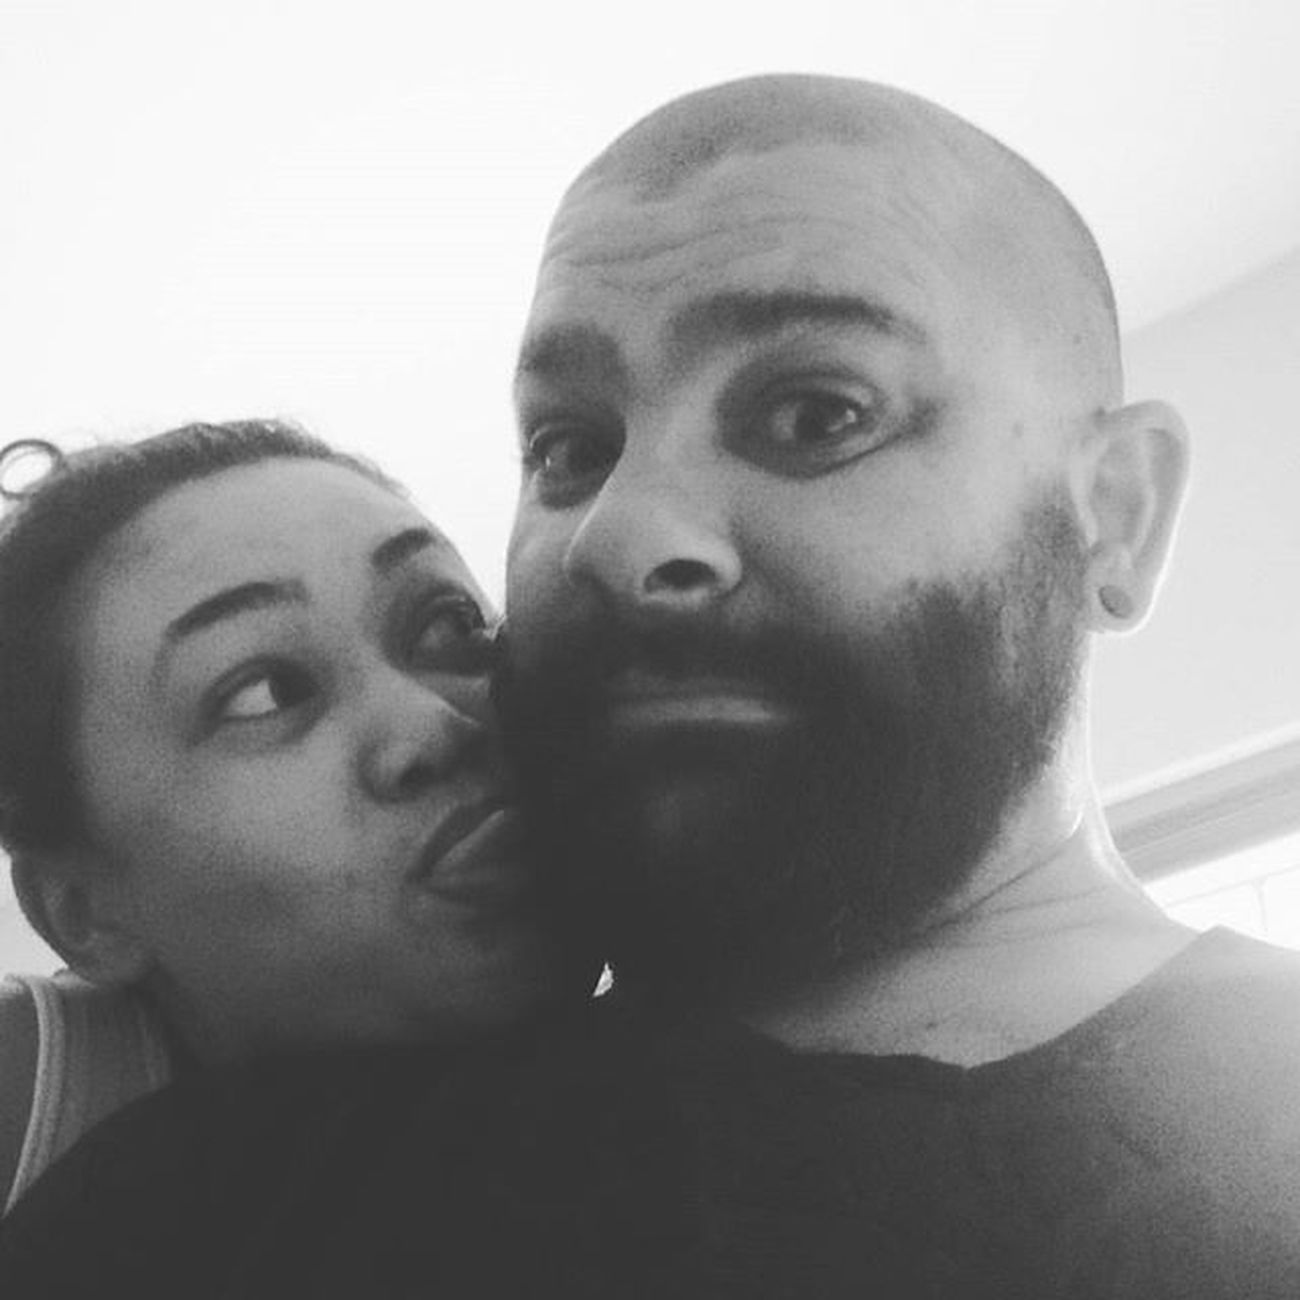 My OneAndOnly Beautiful Shaxcy Wife Pogonophilenation Beardlover Beardgang Beardnation Beardappreciation Beardlife Crazy Selfie Beardporn